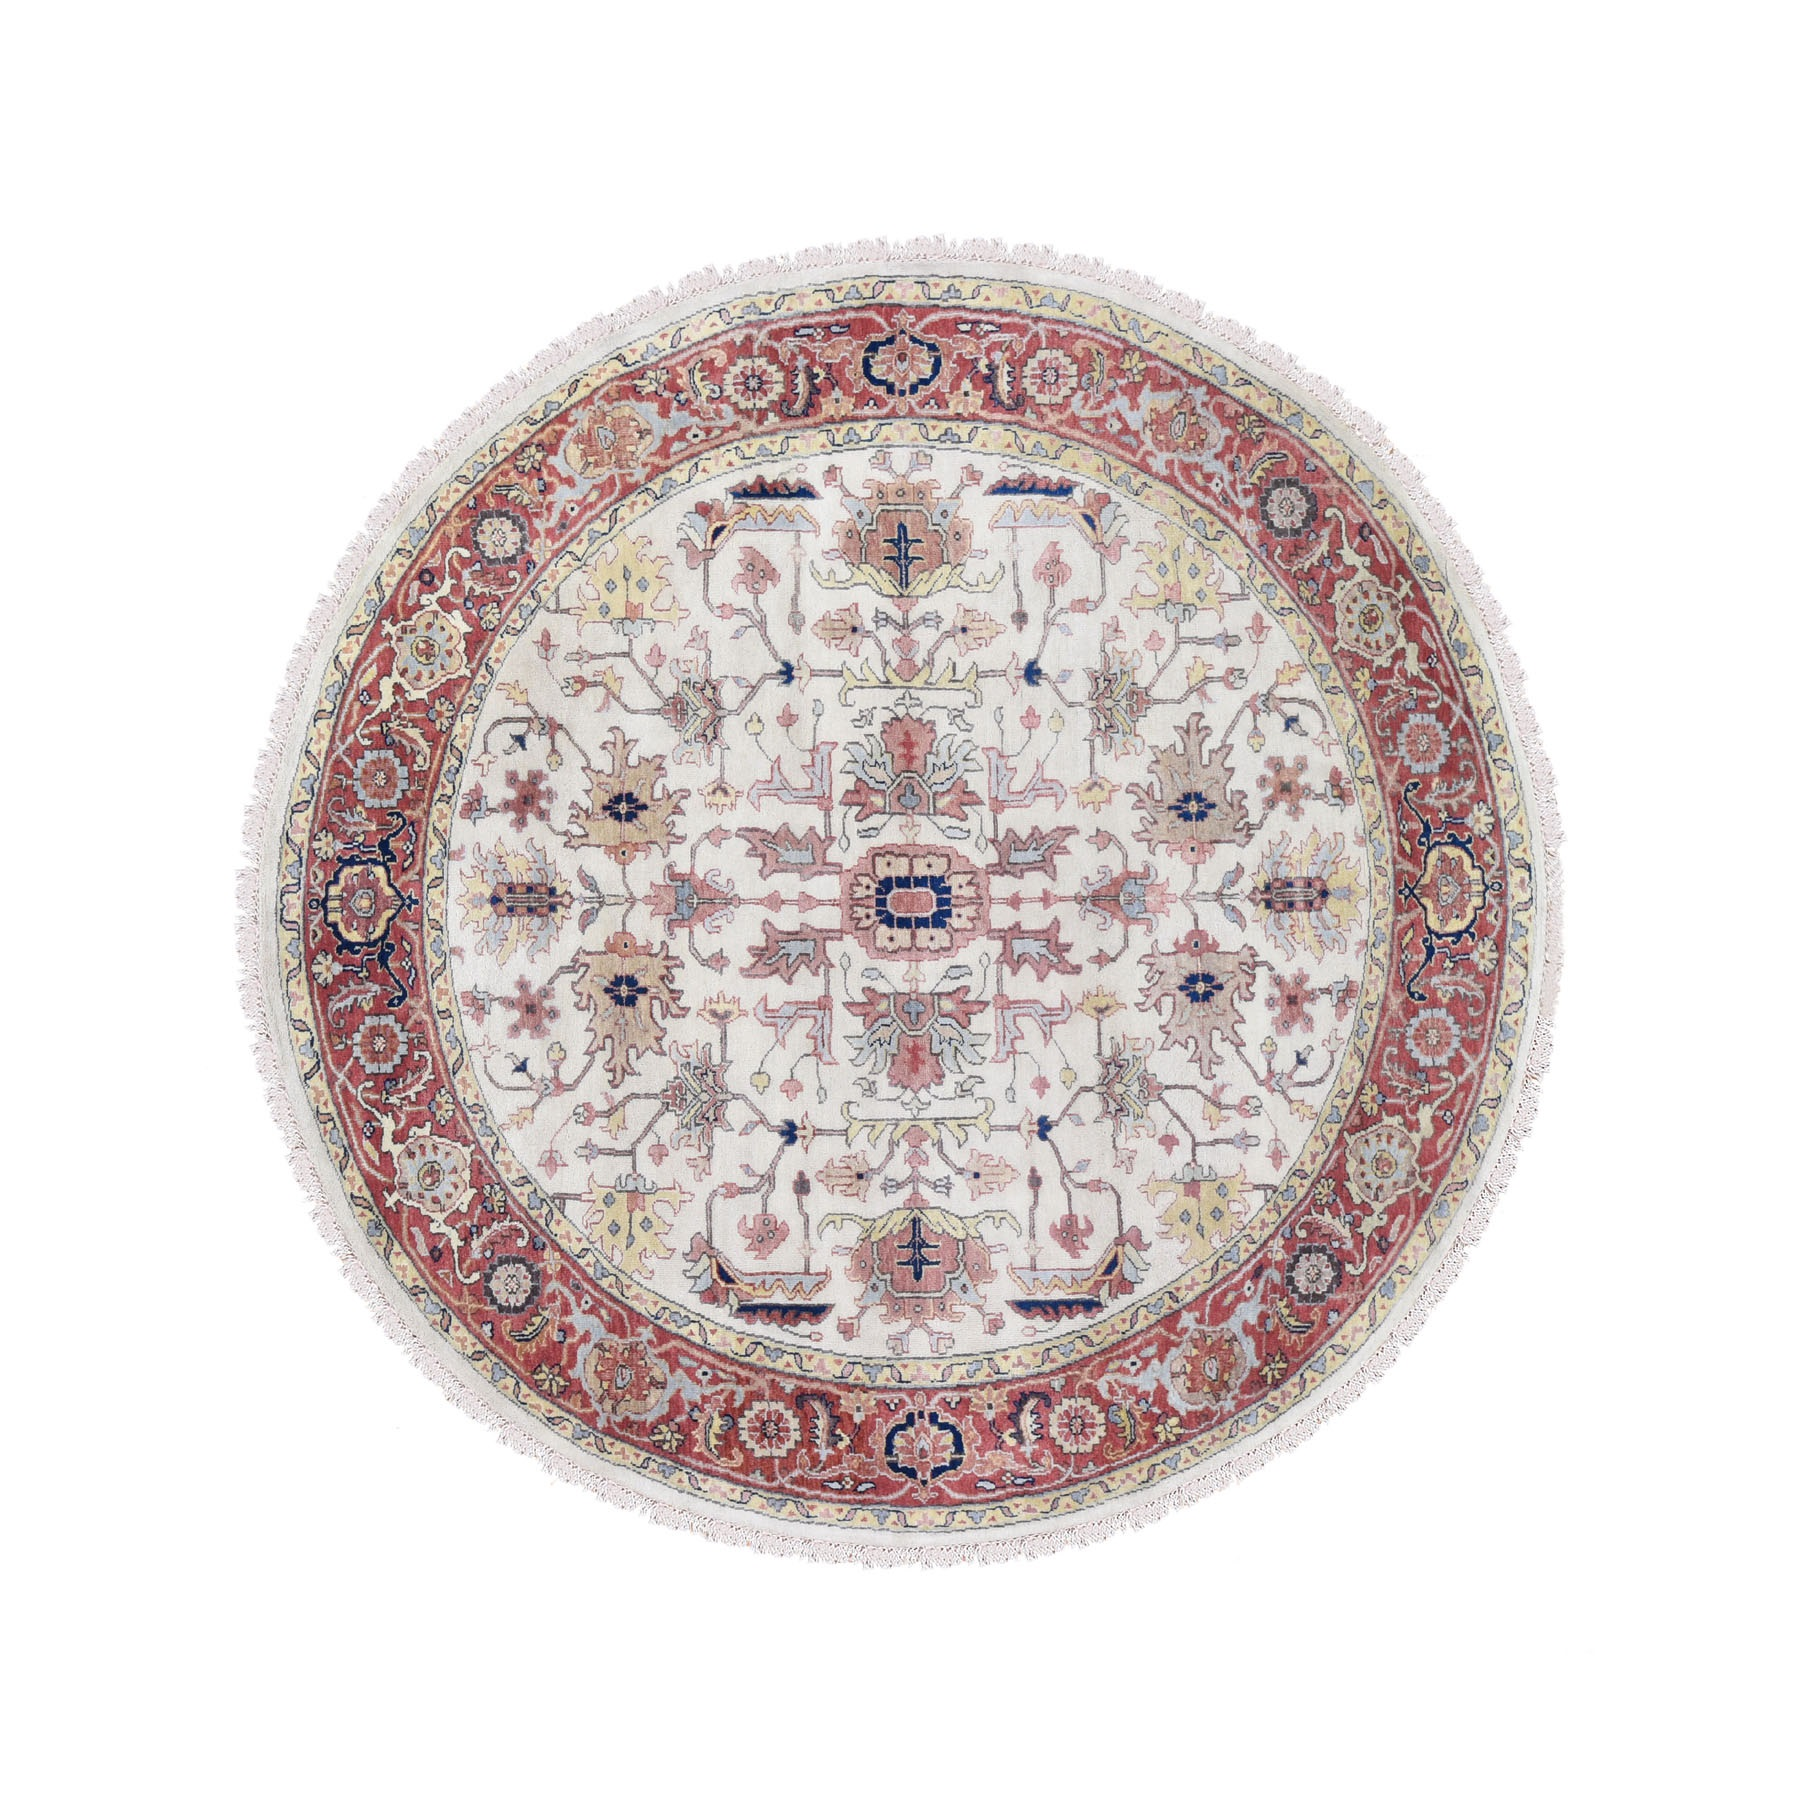 8'x8' Ivory Heriz Revival All Over Design Round Pure Wool Hand Knotted Oriental Rug